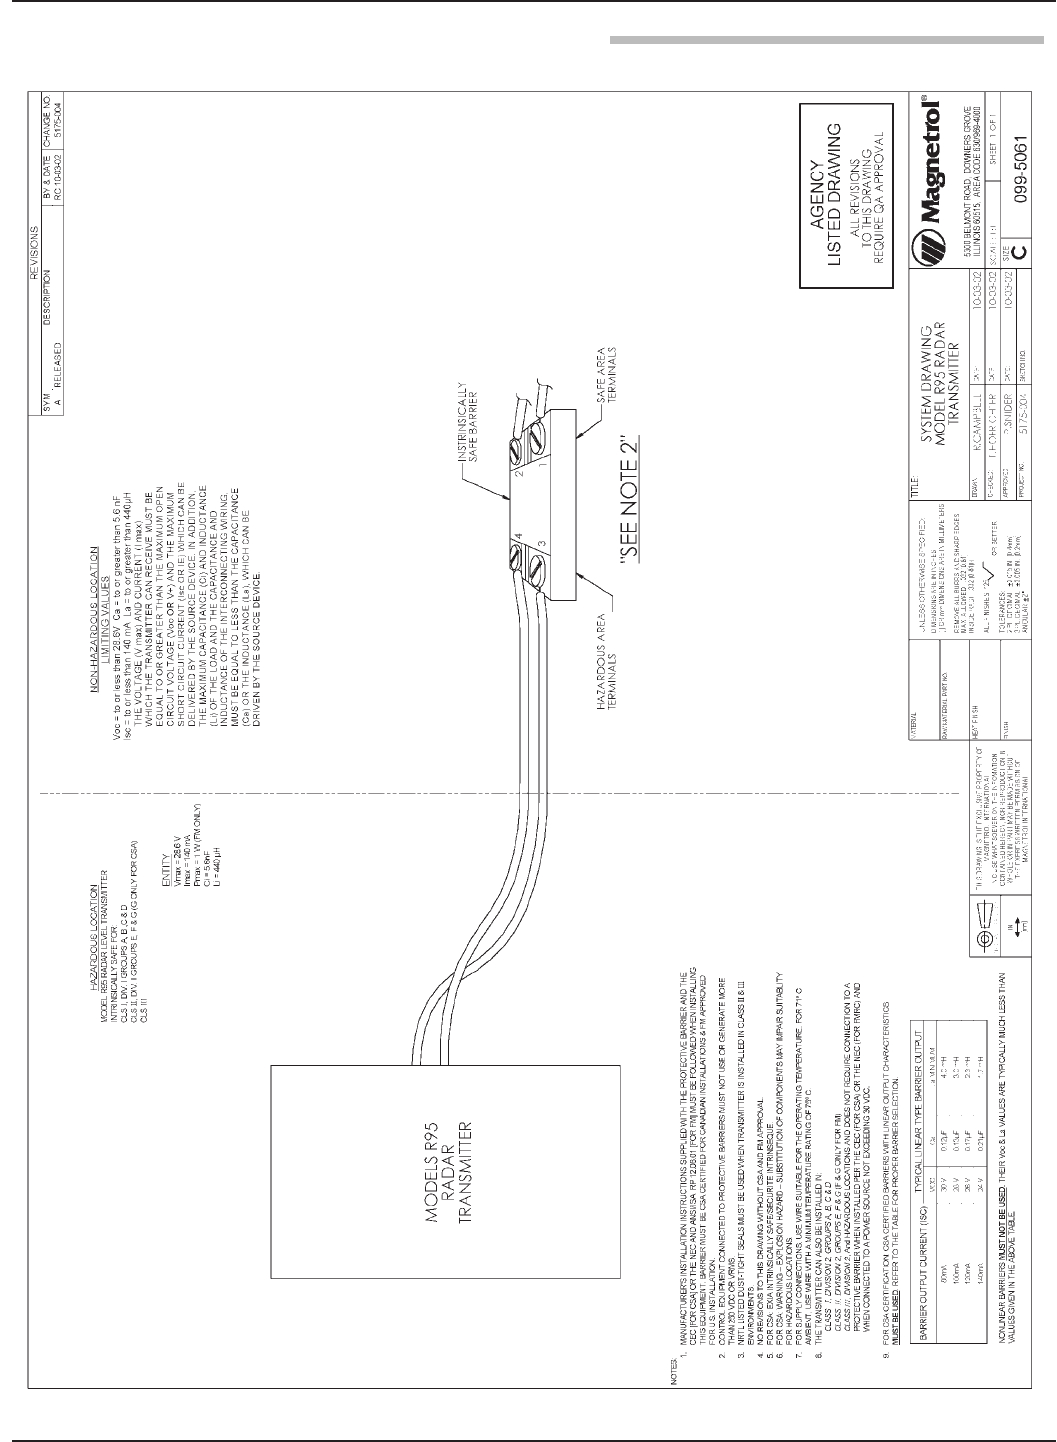 level transmitter wiring diagram